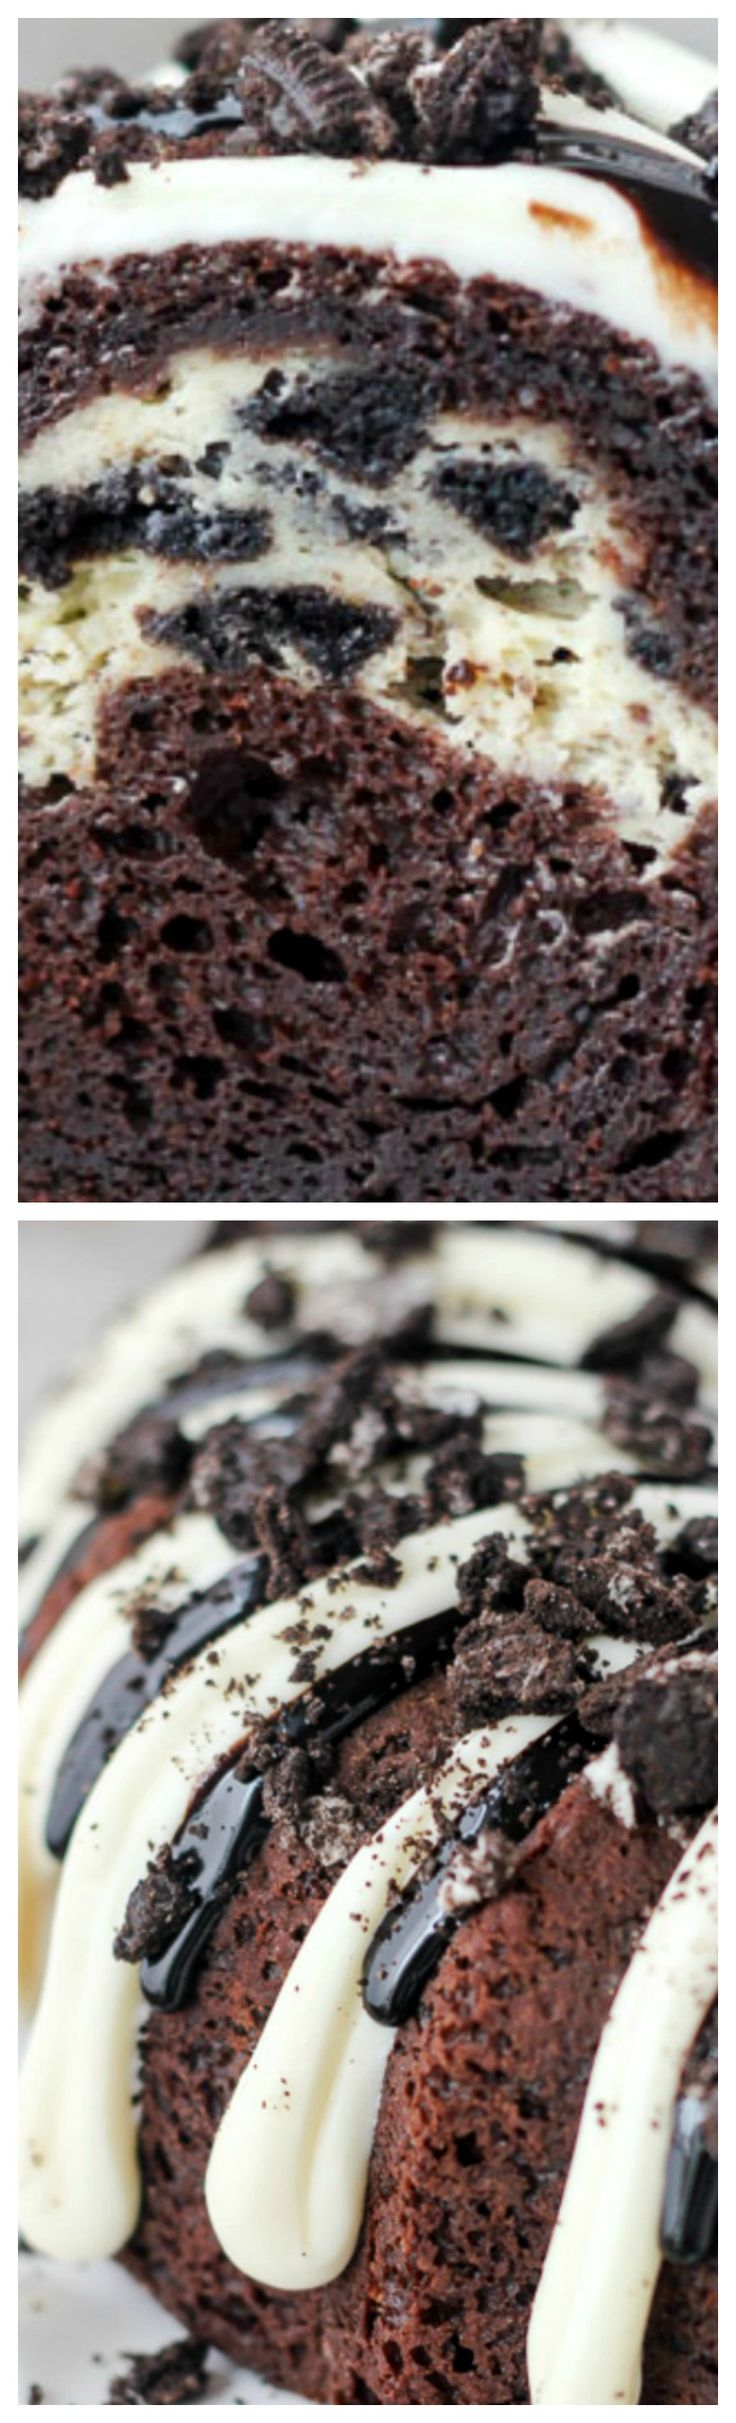 Oreo Chocolate Cheesecake Cake ~ A dark chocolate bundt cake layered with an Oreo cheesecake and covered in a chocolate cheesecake glaze.